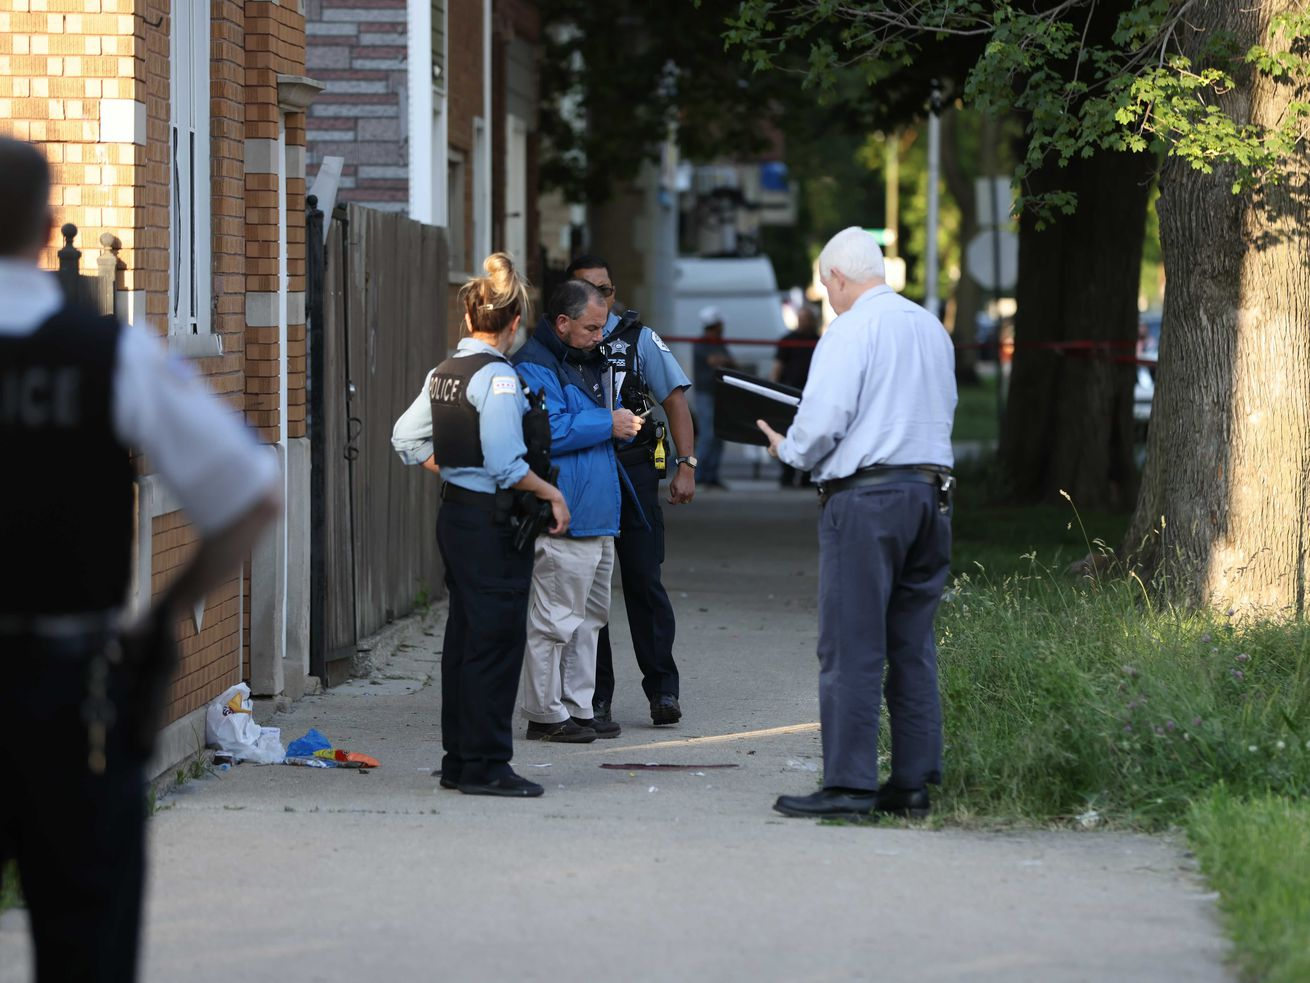 A 14-year-old girl shot in the head Wednesday in Back of the Yards is another victim of Chicago's gang violence.